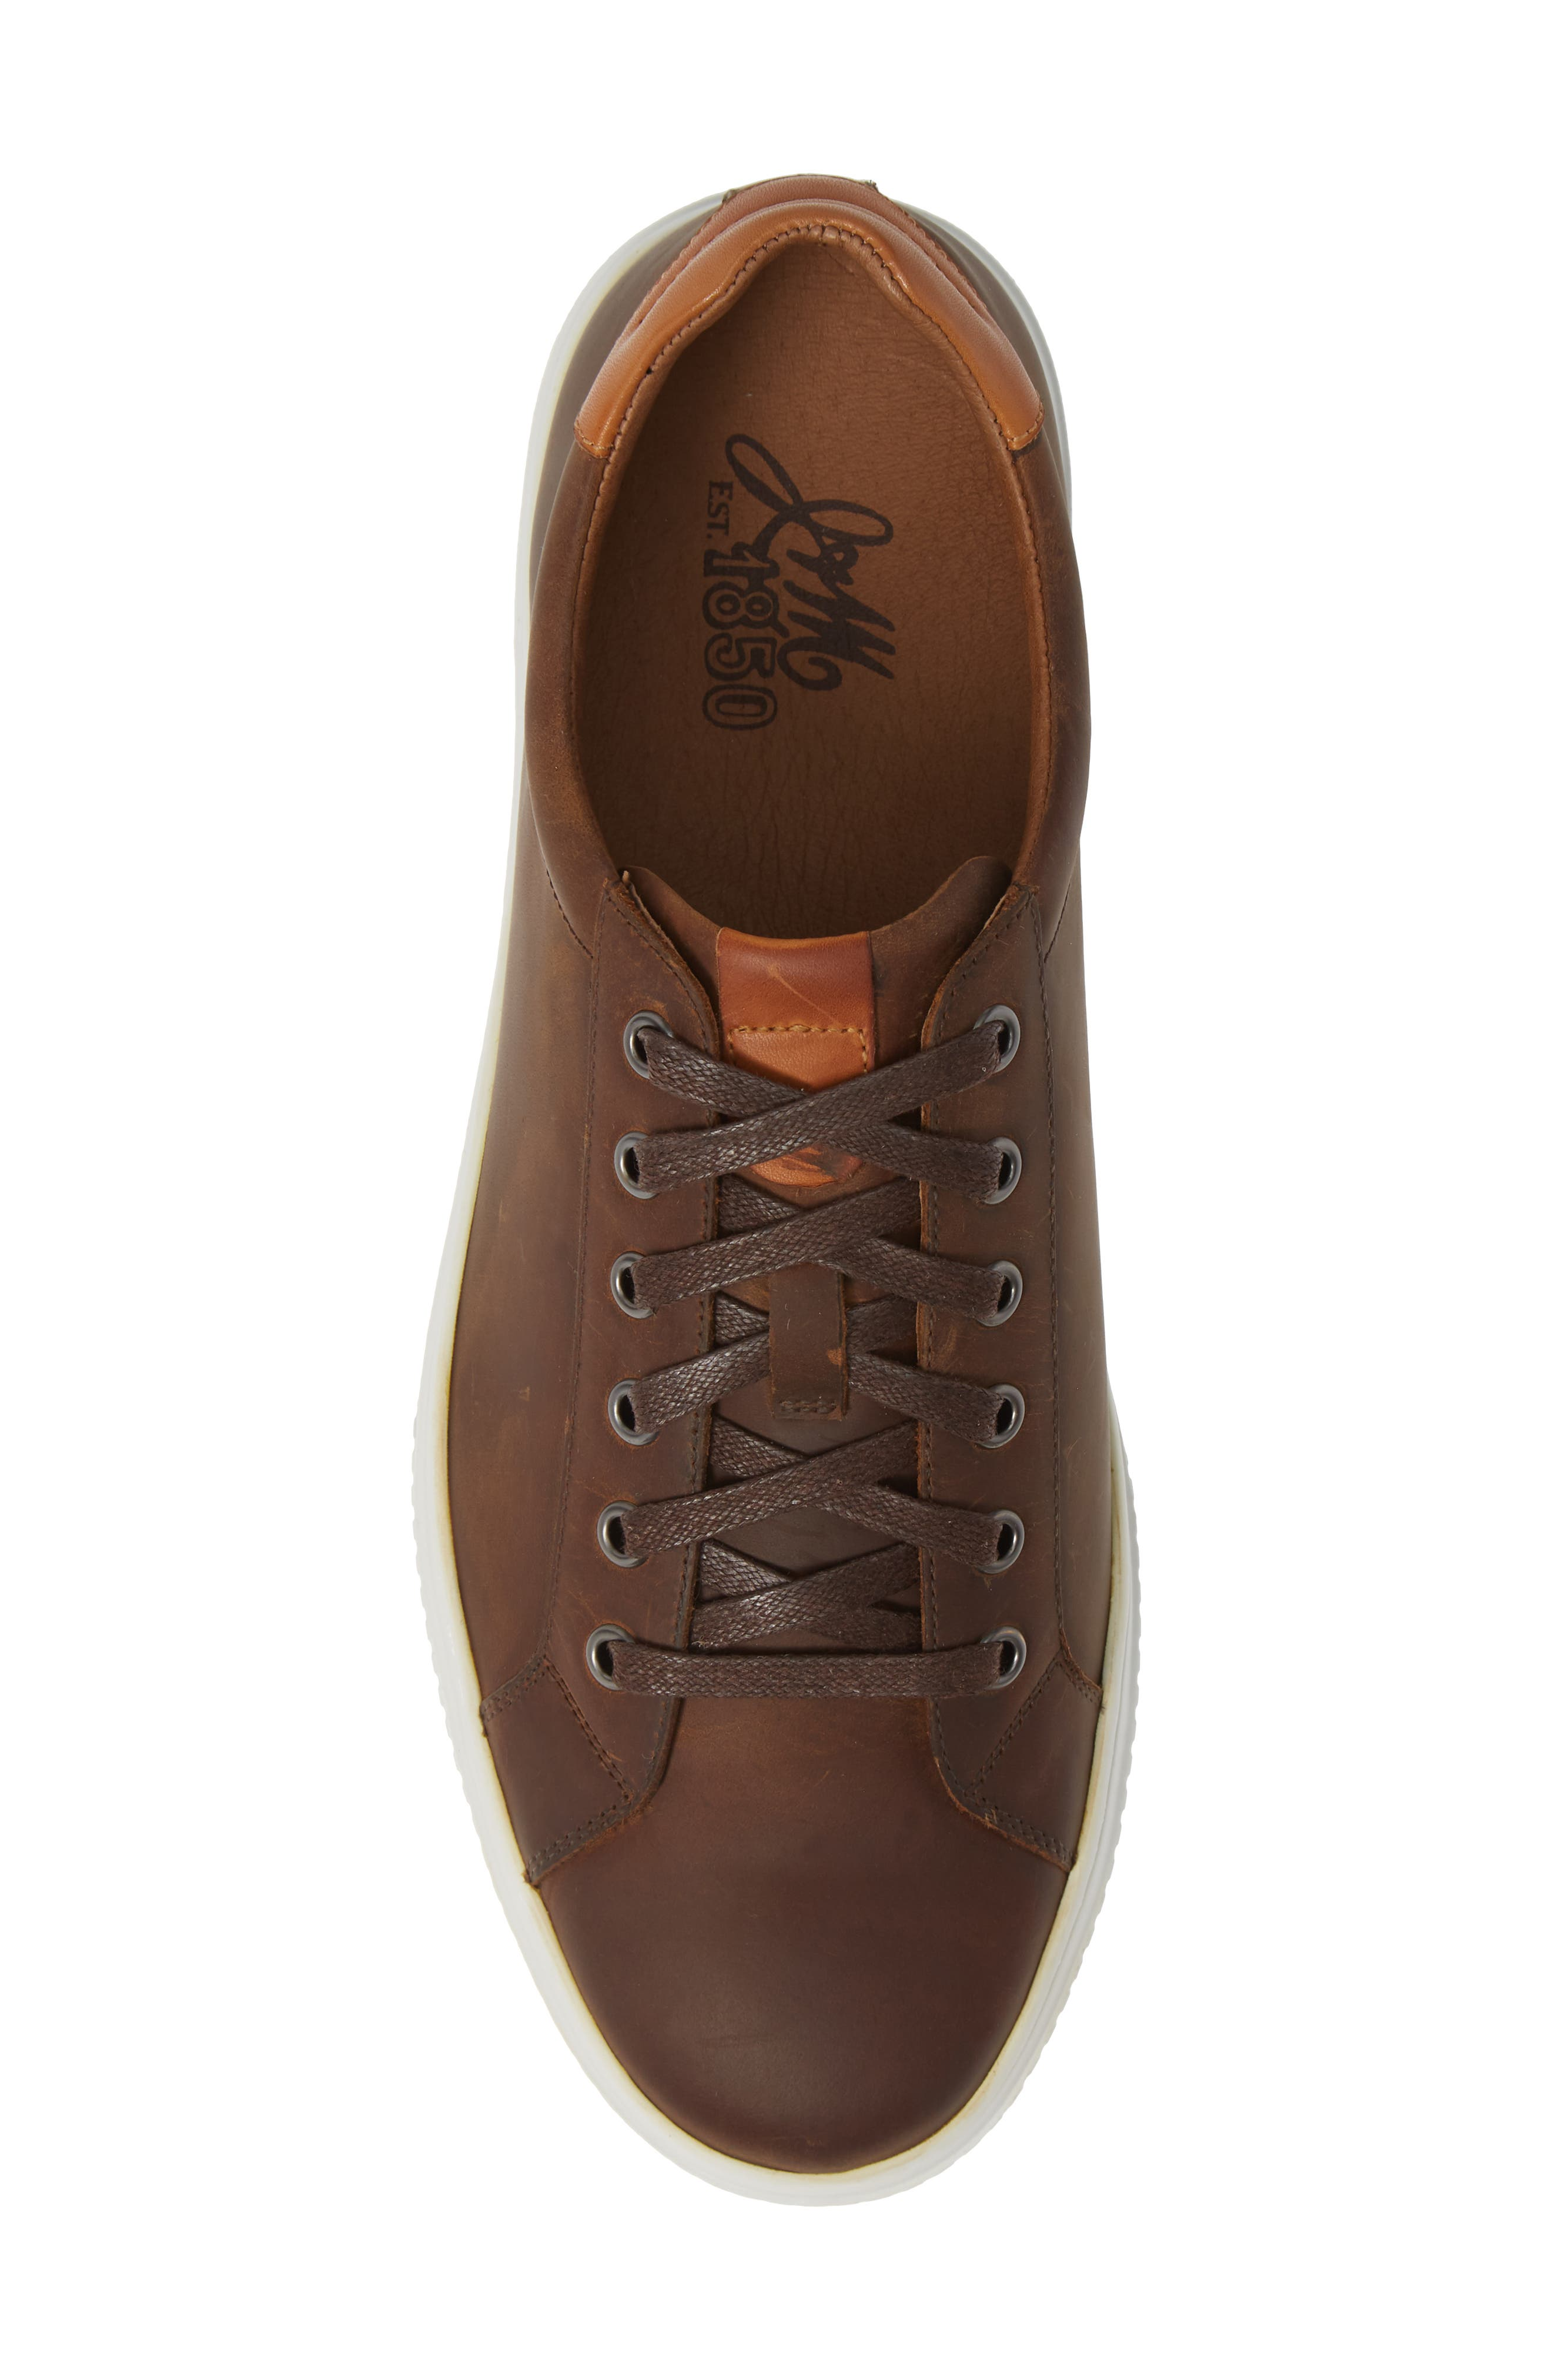 Toliver Low Top Sneaker,                             Alternate thumbnail 5, color,                             TAN LEATHER